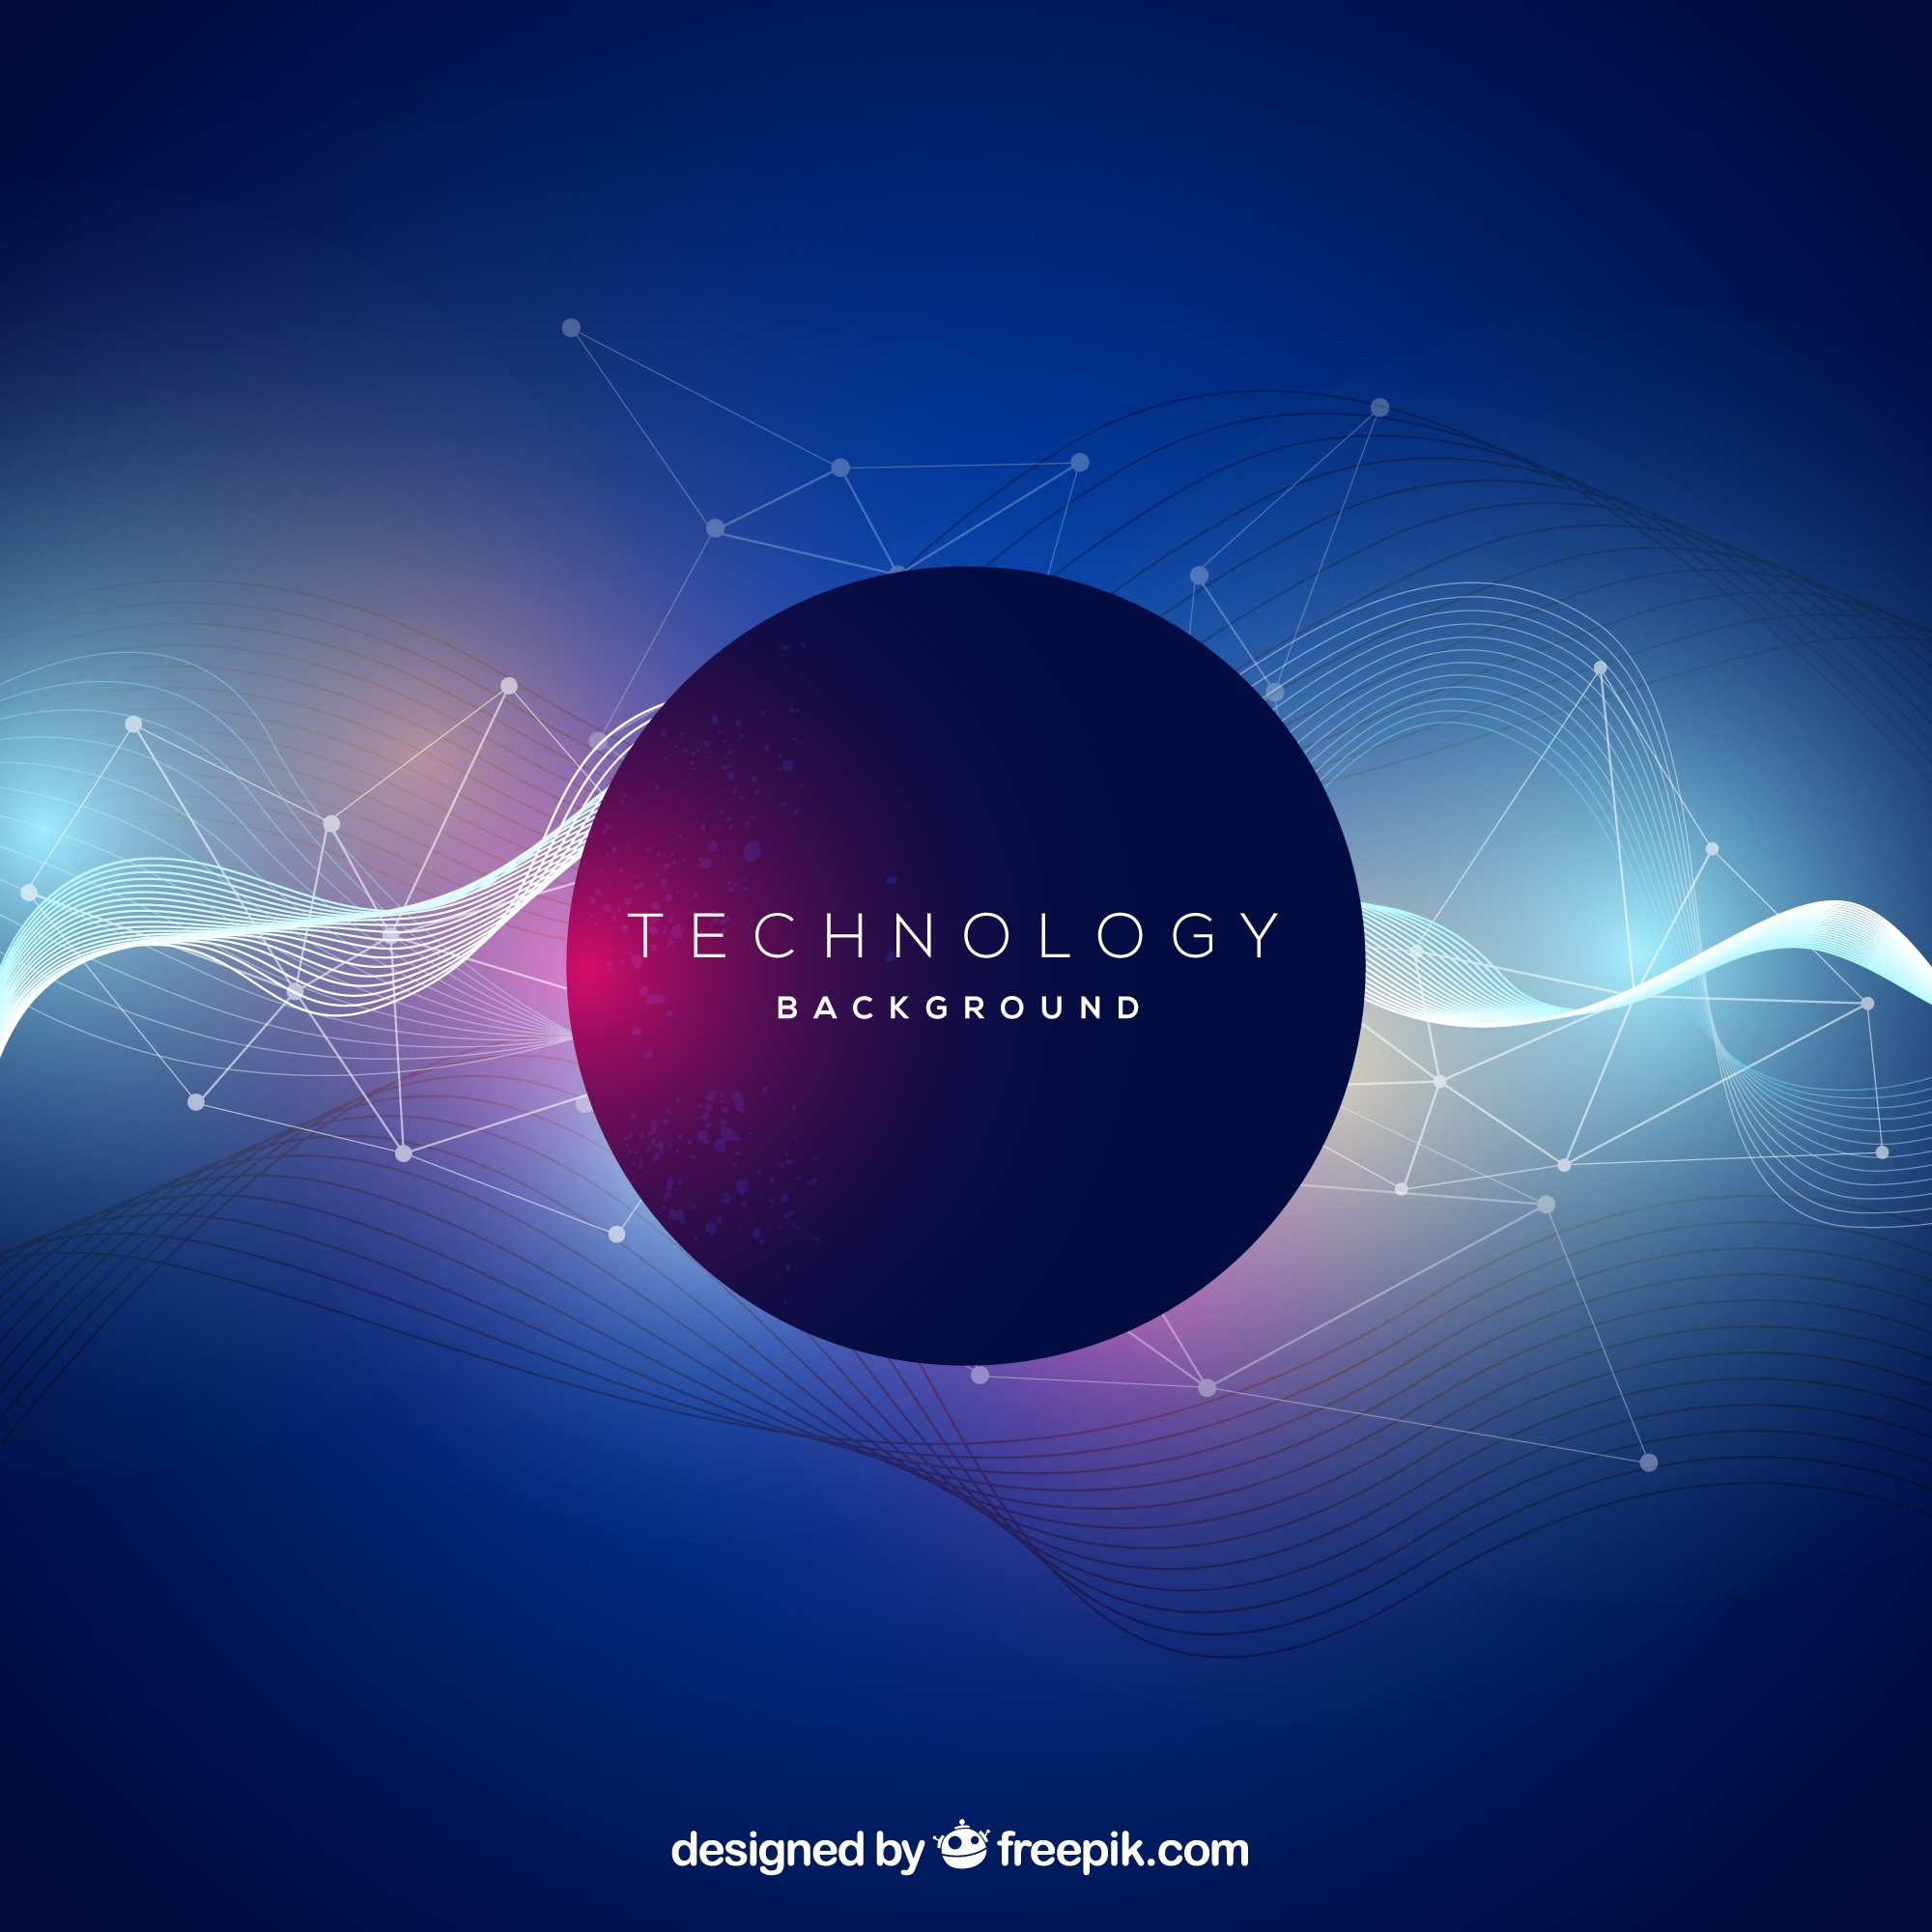 Technology background with abstract waves